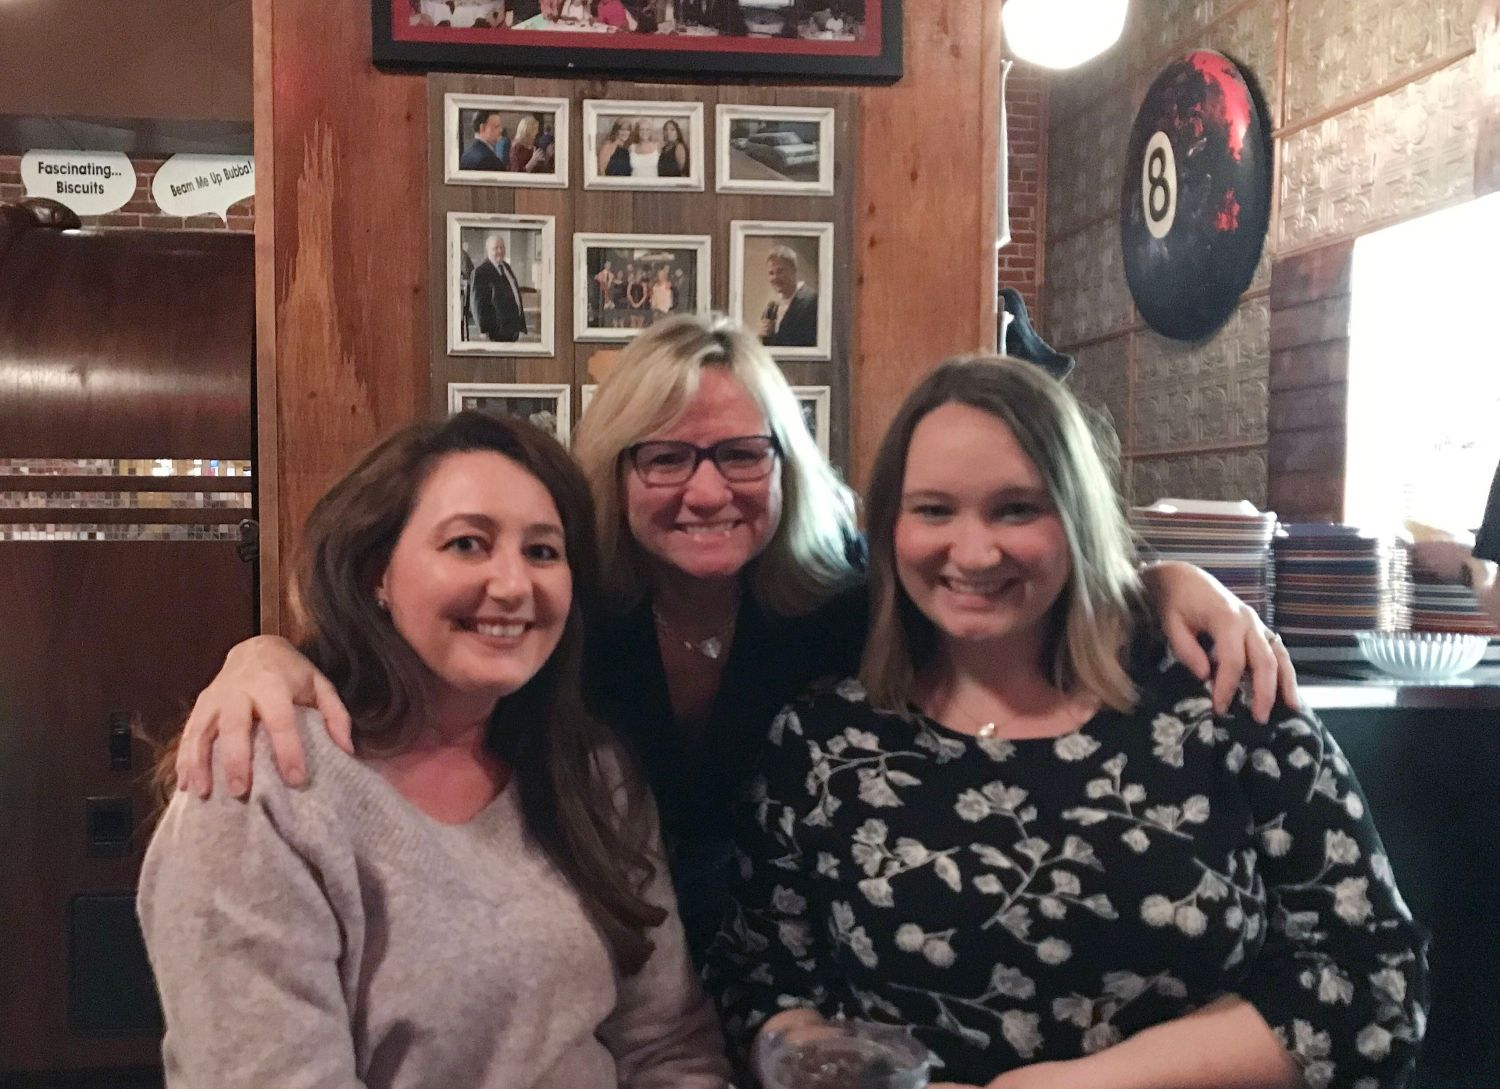 Melissa Boughton (right), with her mom (middle) and her sister (left) during a recent visit to Texas. Both women were the aut